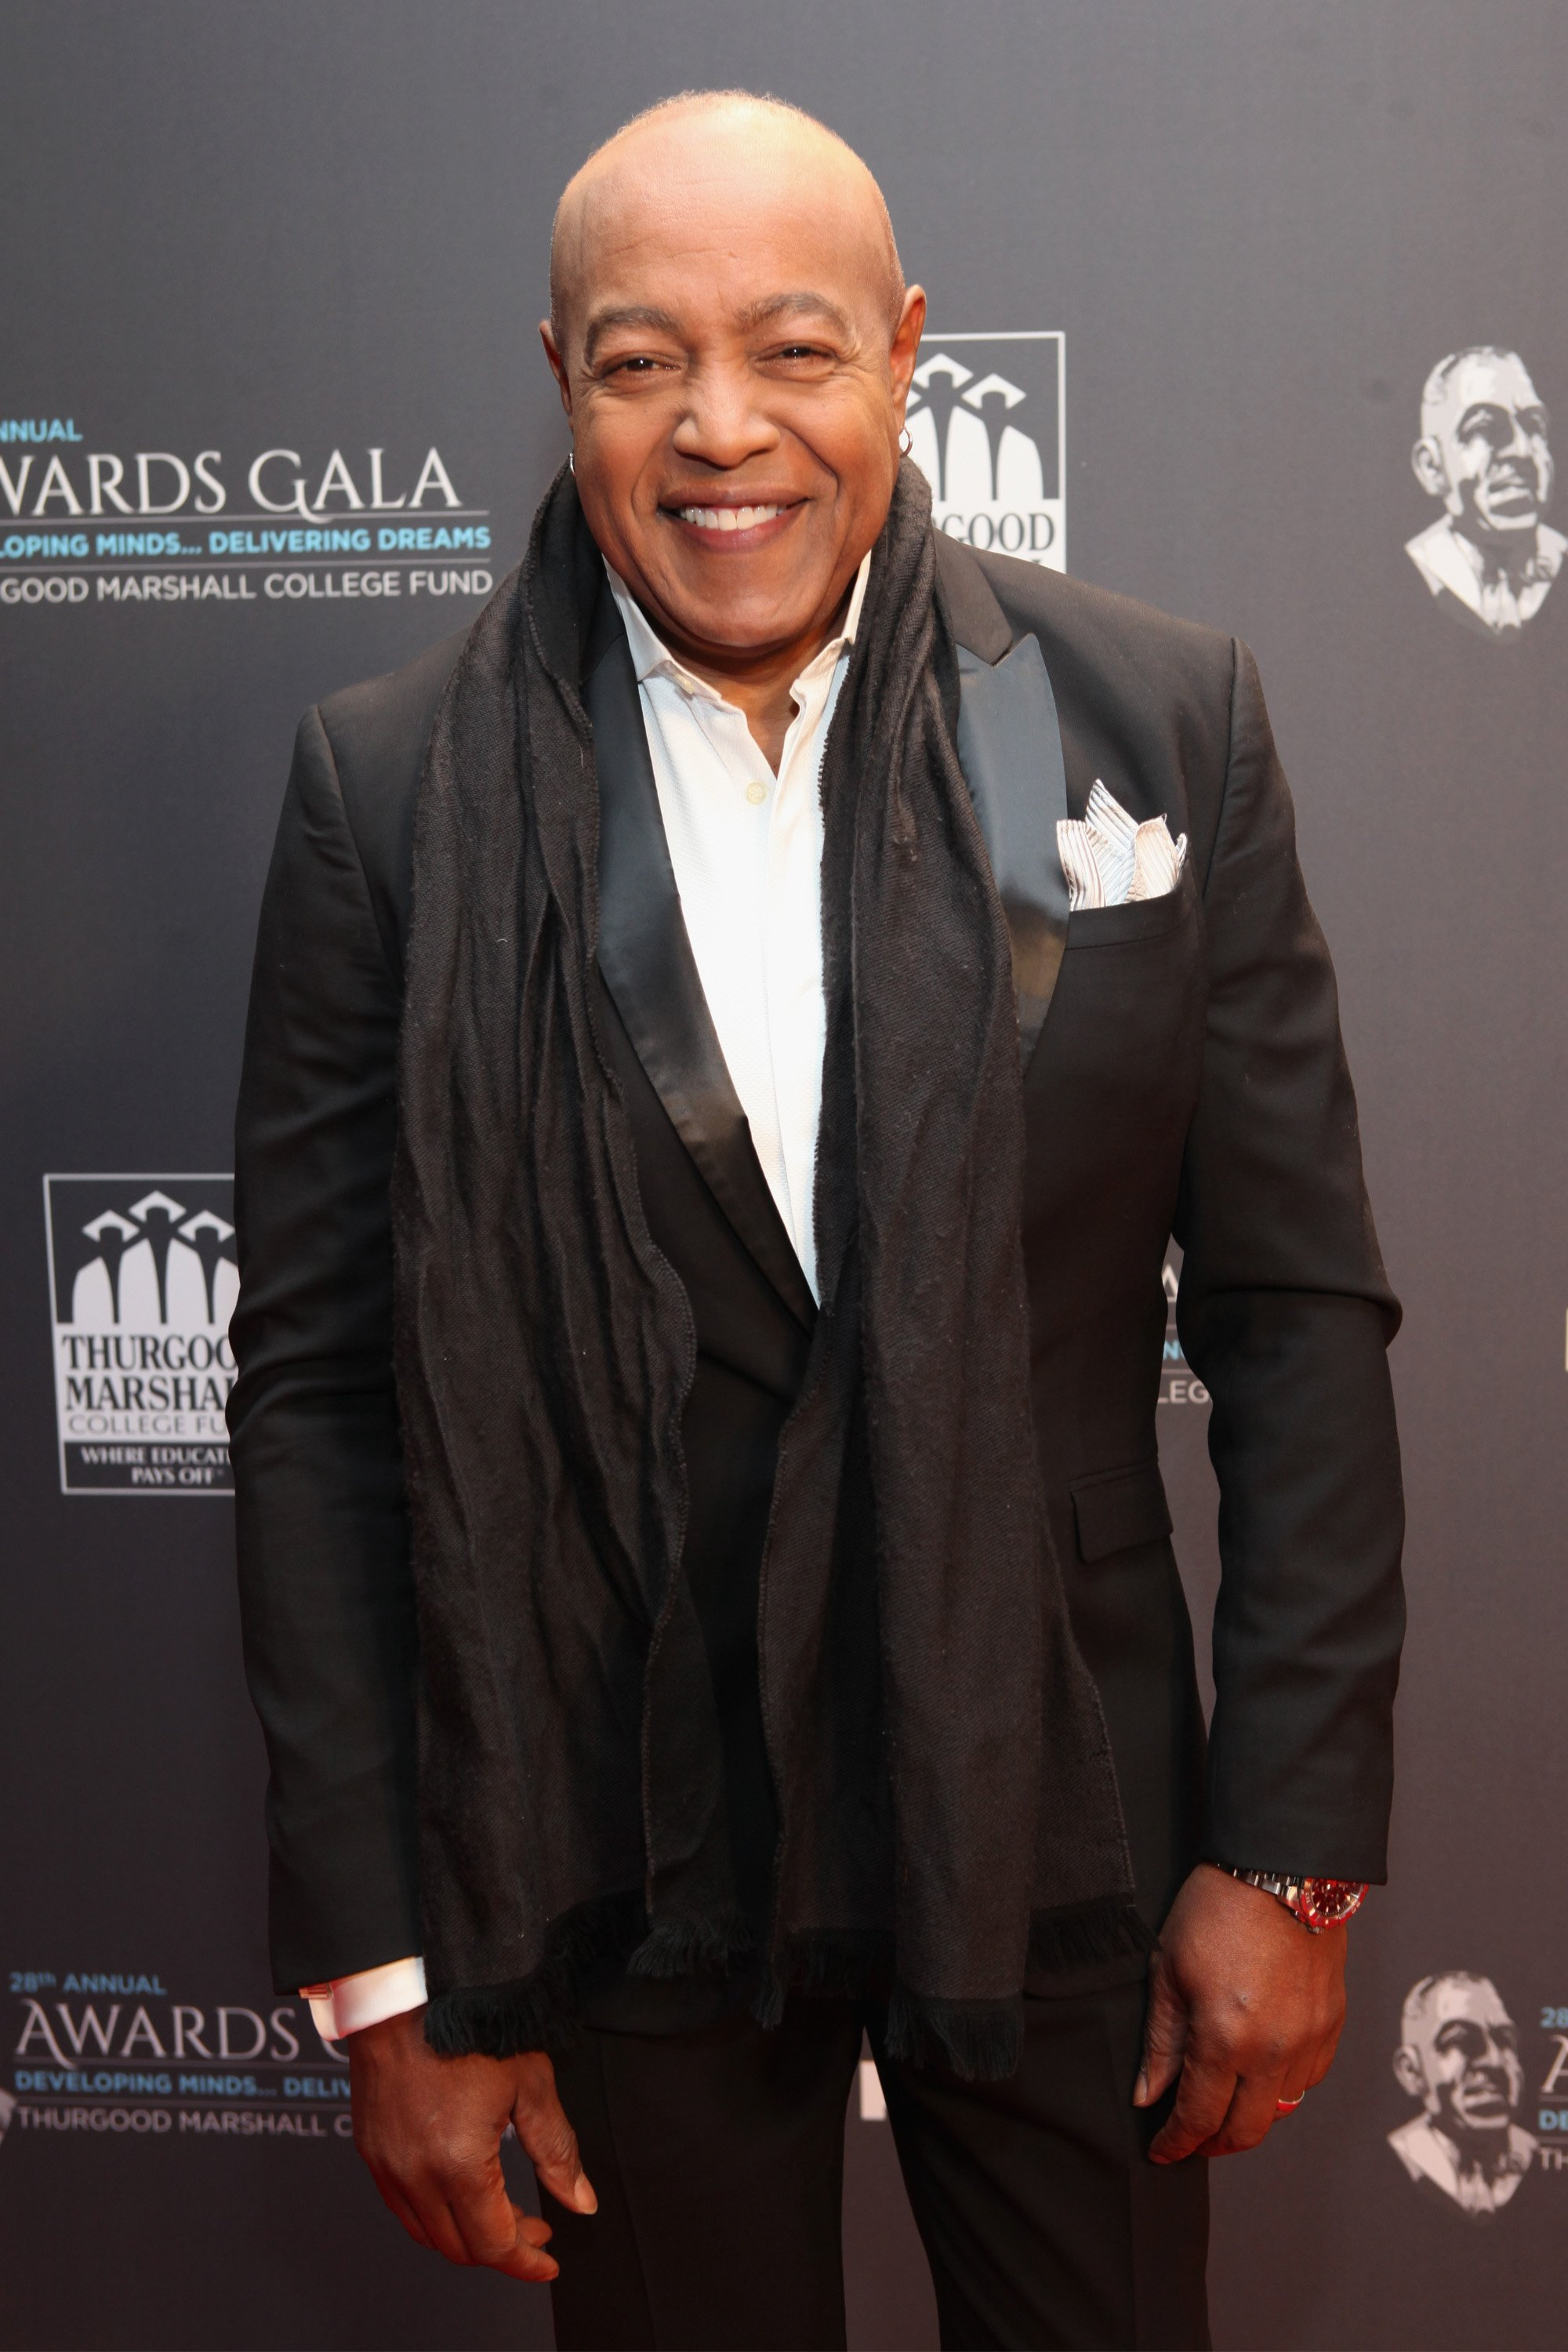 Peabo Bryson attends the Thurgood Marshall College Fund 28th Annual Awards Gala at Washington Hilton on November 21, 2016 in Washington, DC | Photo: GettyImages